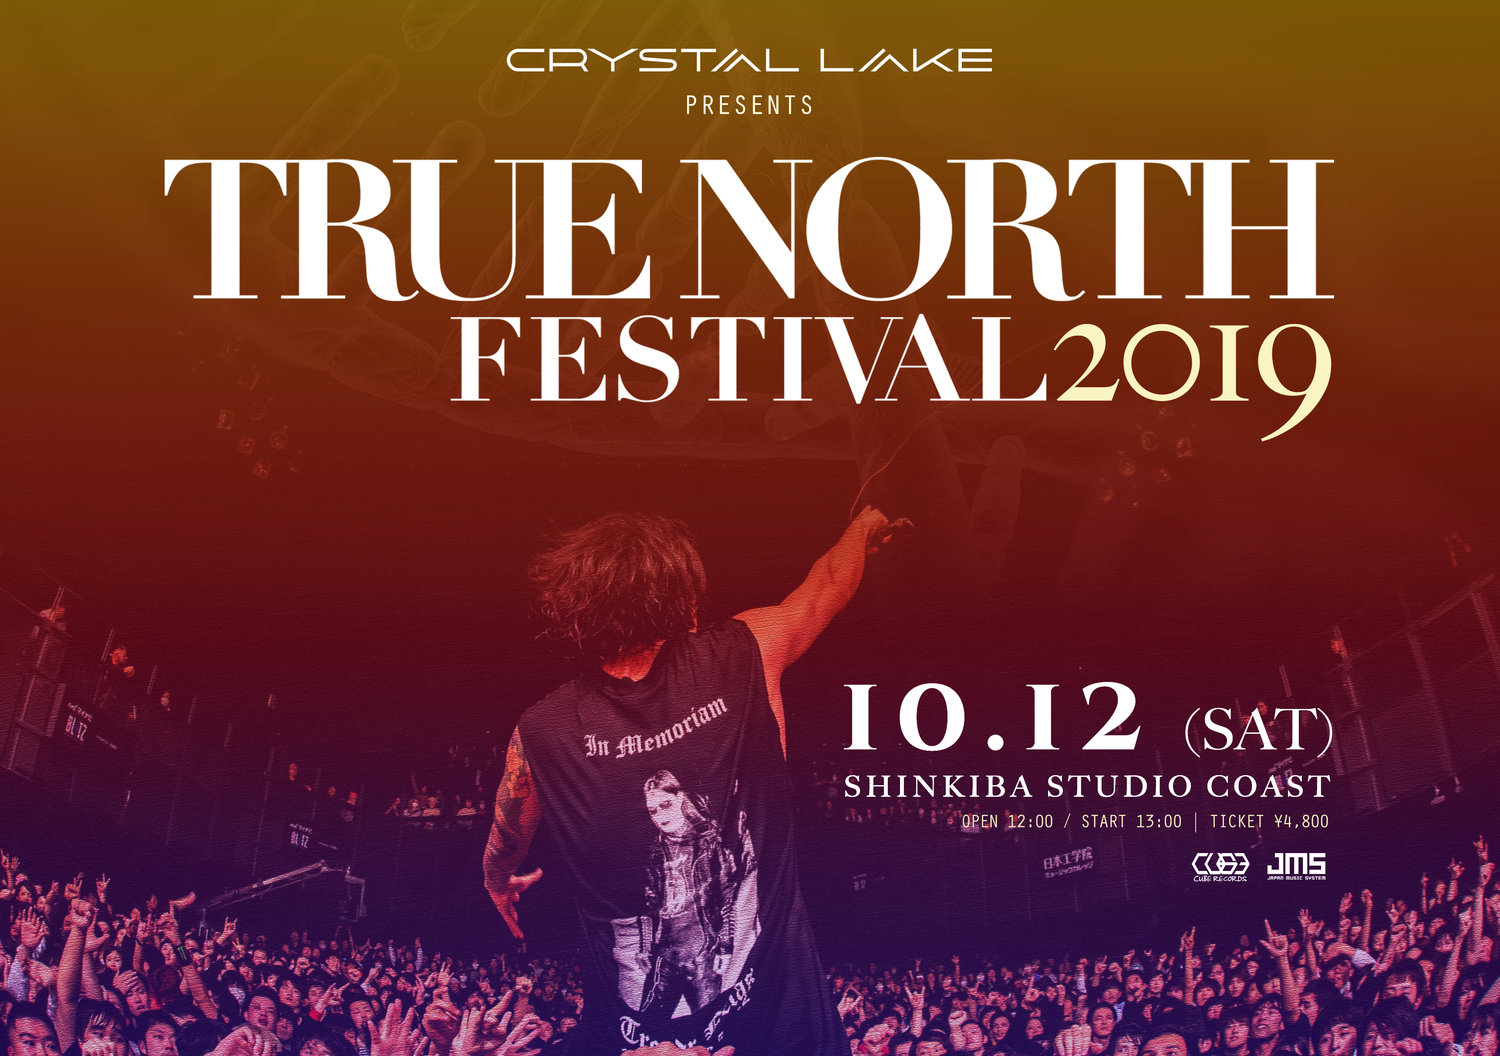 Crystal Lake TRUE NORTH FESTIVAL 2019